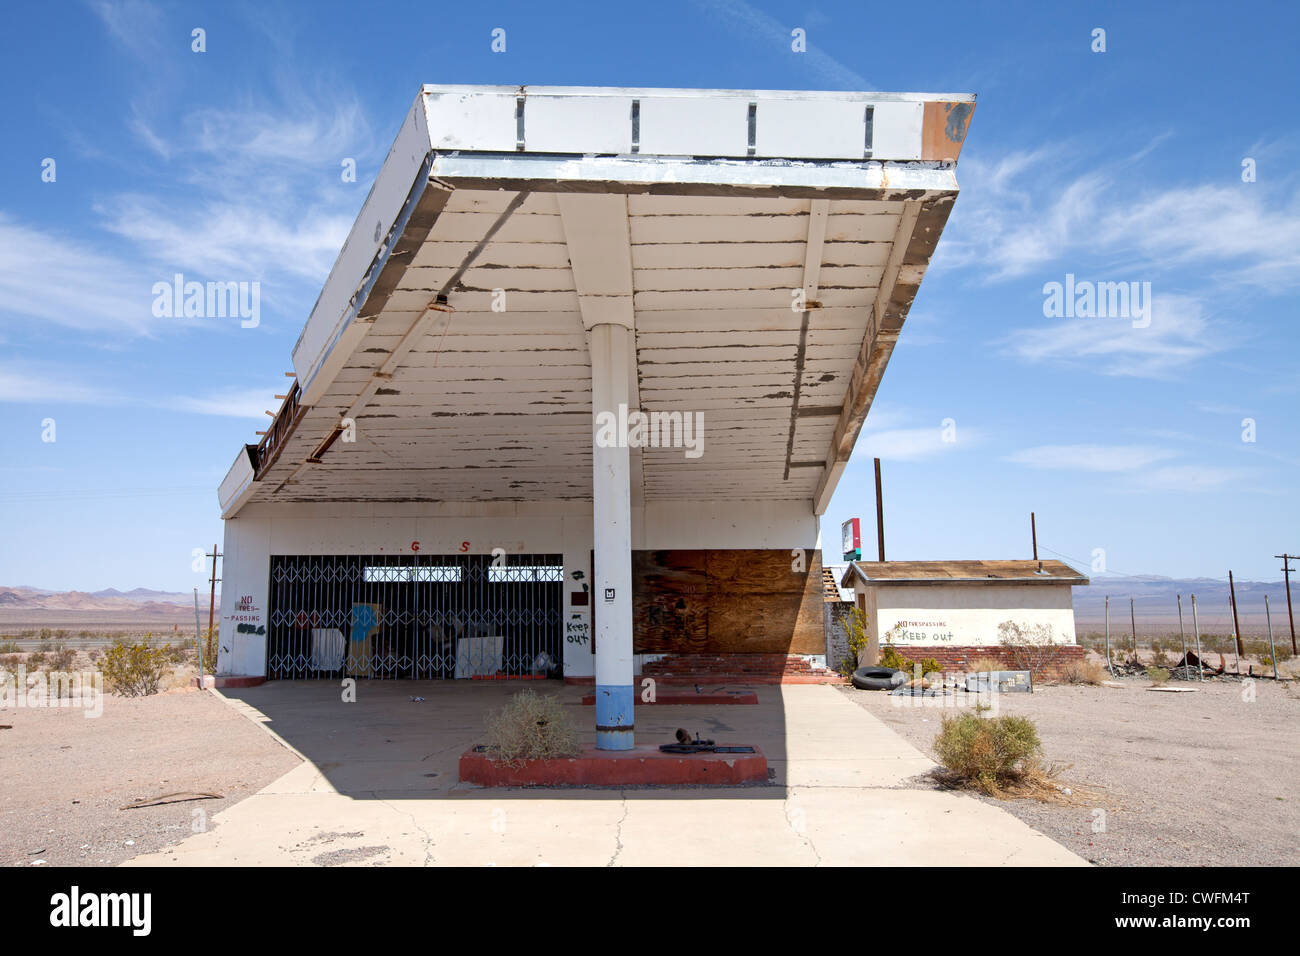 Abandoned Gas Station Along Route 66 In Ludlow California Stock Photo Alamy